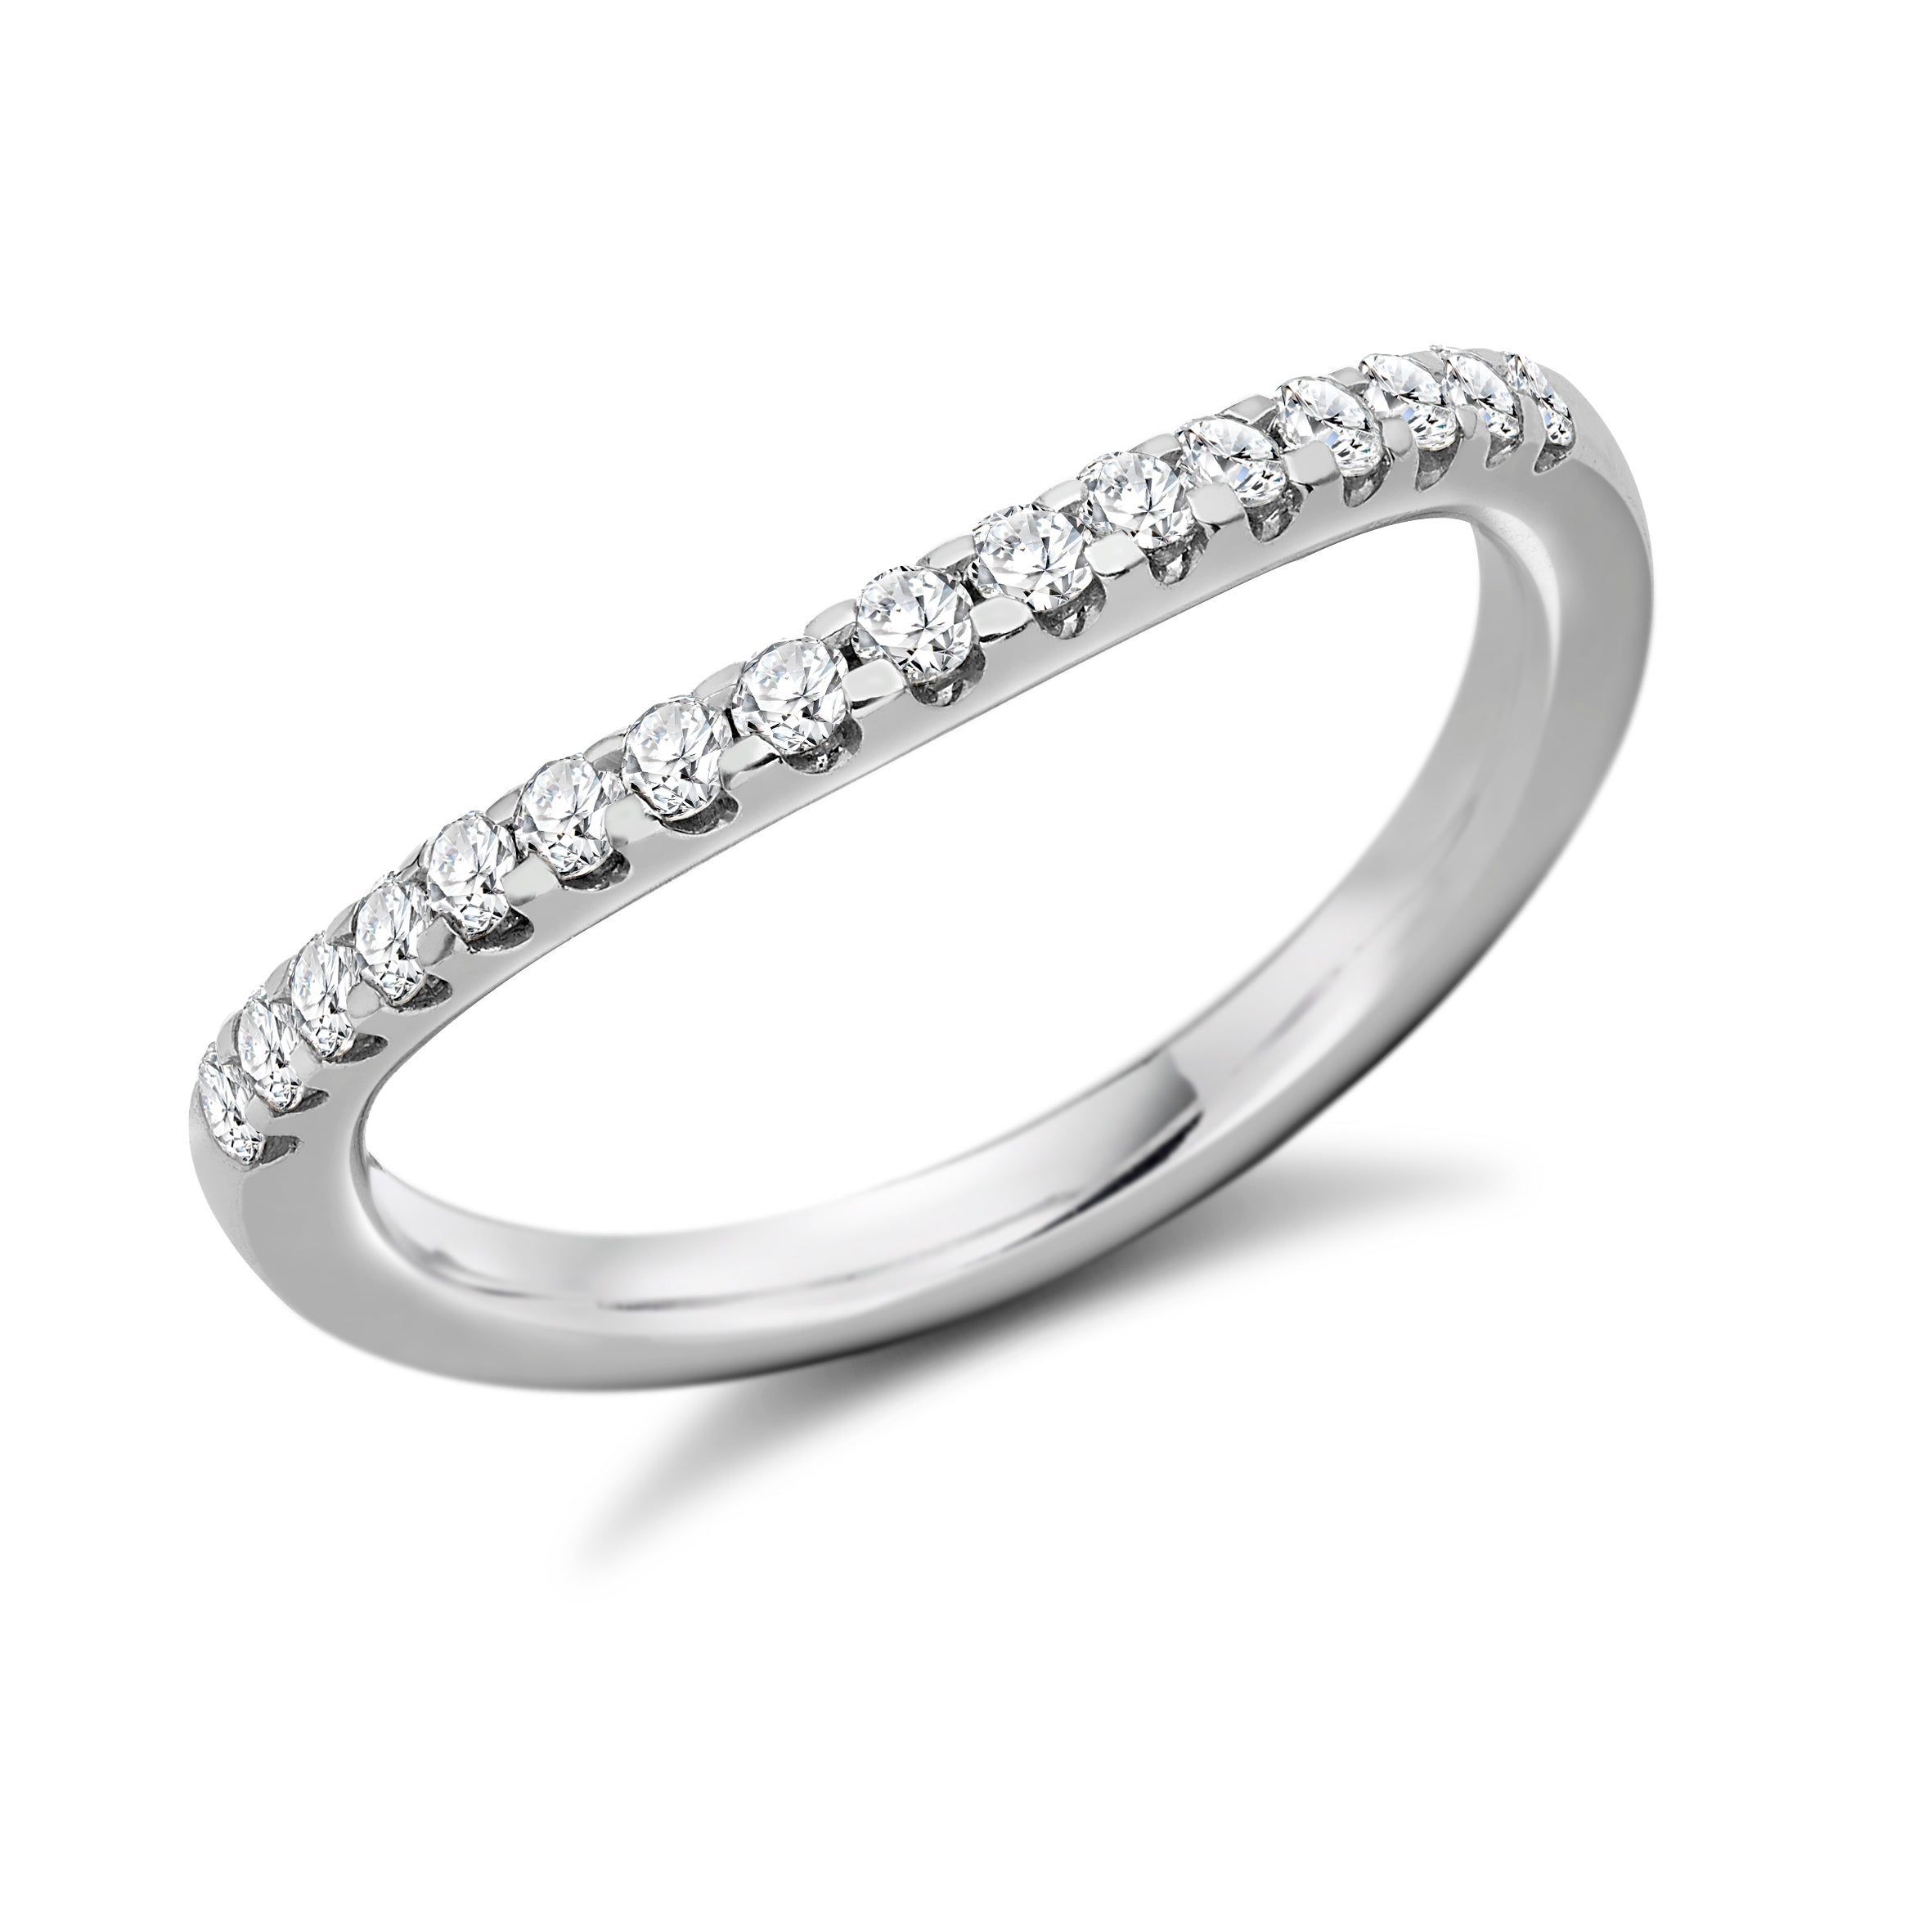 0.3ct Round Brilliant Cut Diamonds Curved Shaped Band - Wedding Ring - (Home Try-On)